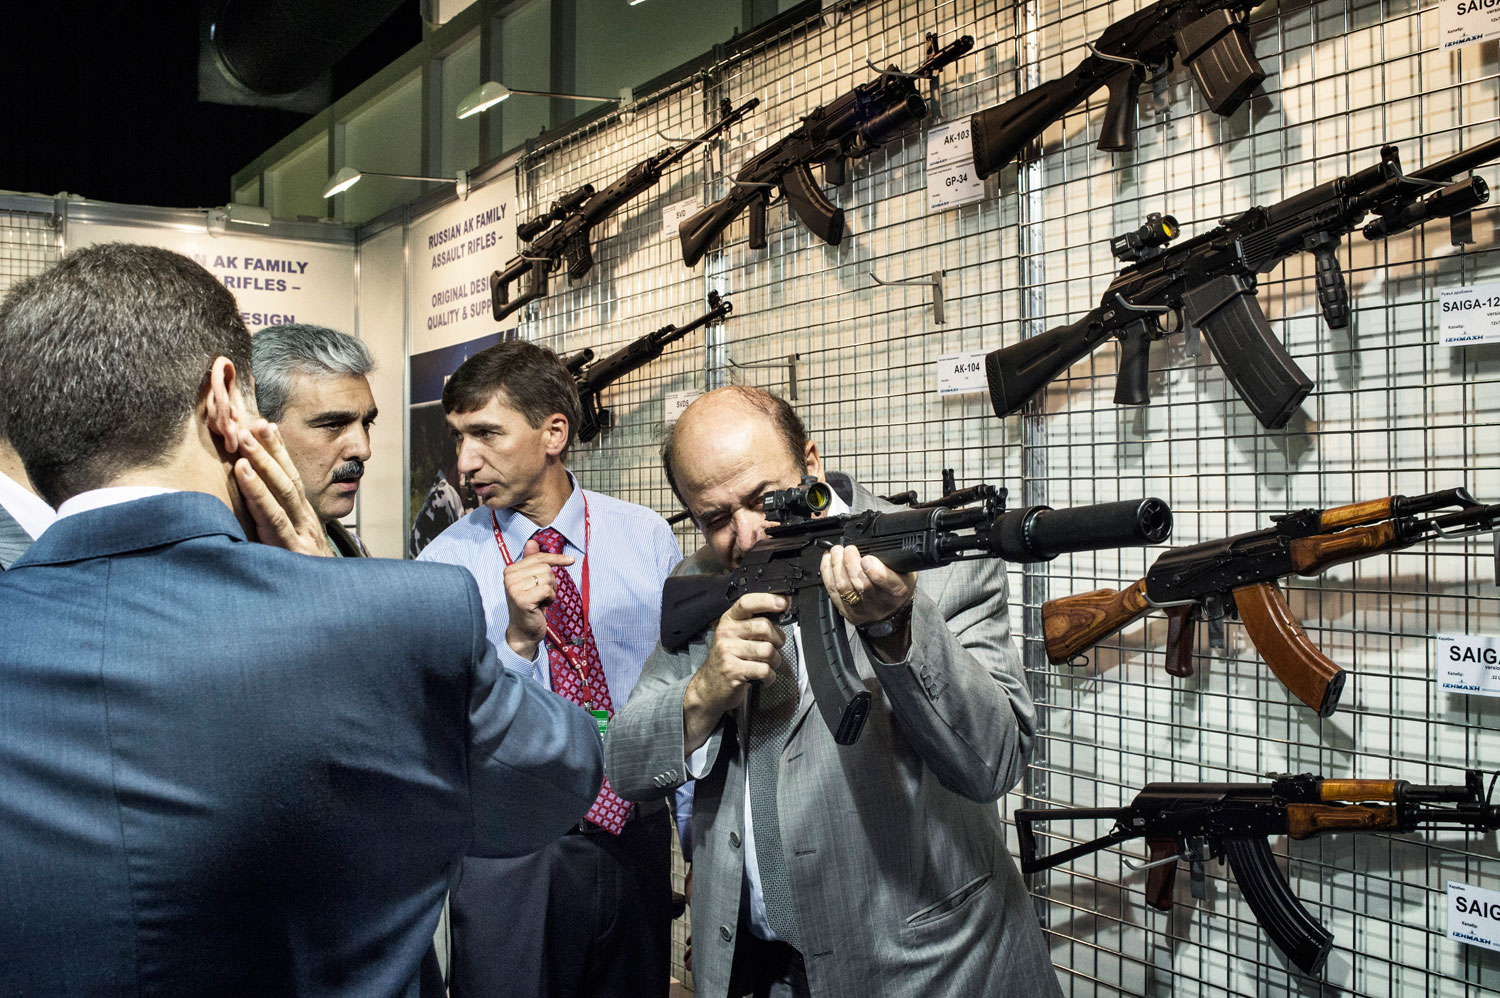 The head of the Syrian delegation to the arms bazaar tries out a new silencer-equipped Kalashnikov assault rifle.